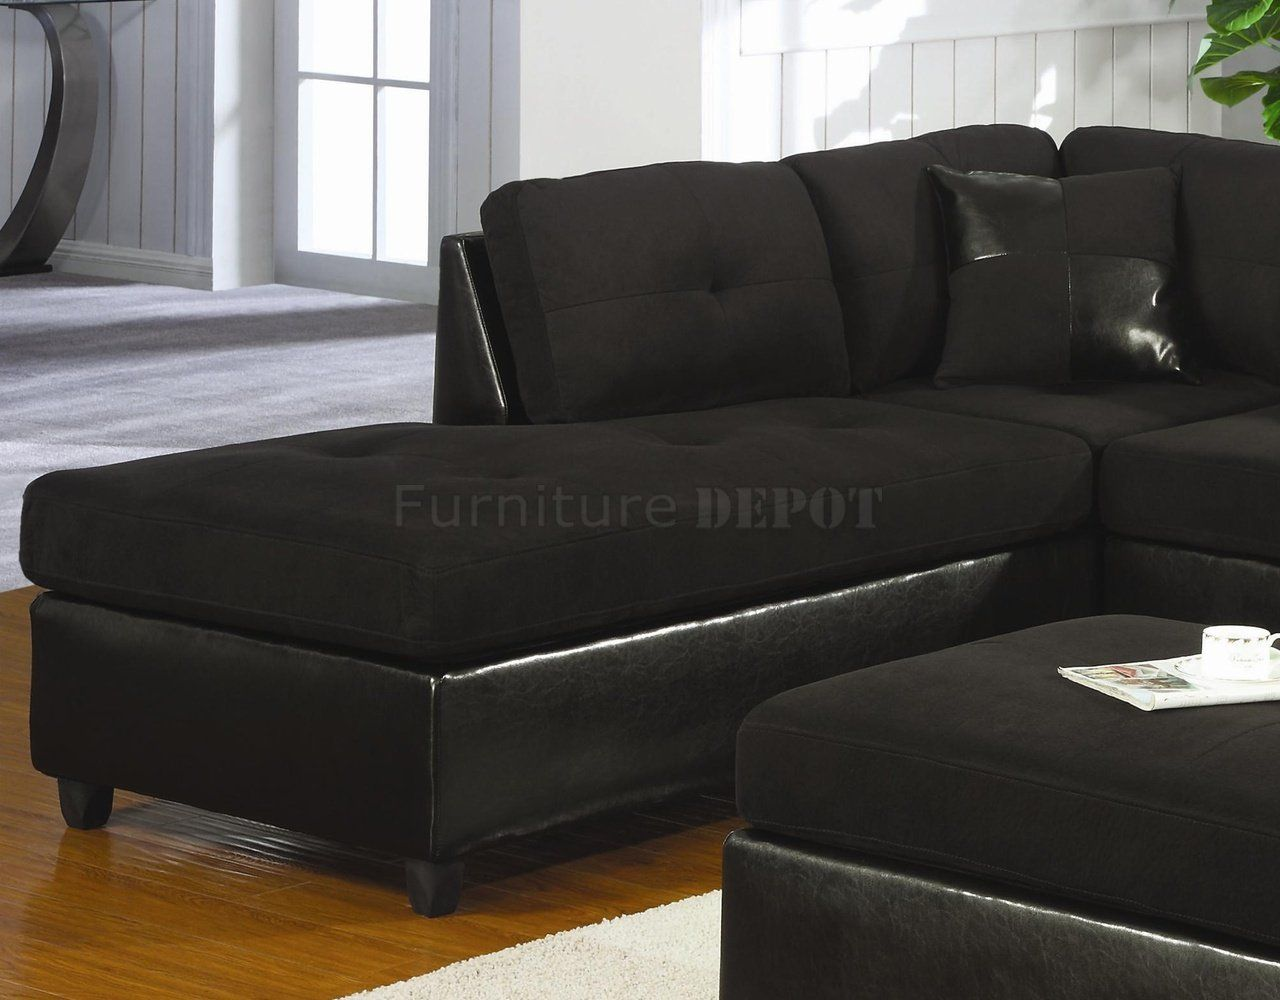 Black Microsuede Couch Microfiber Faux Leather